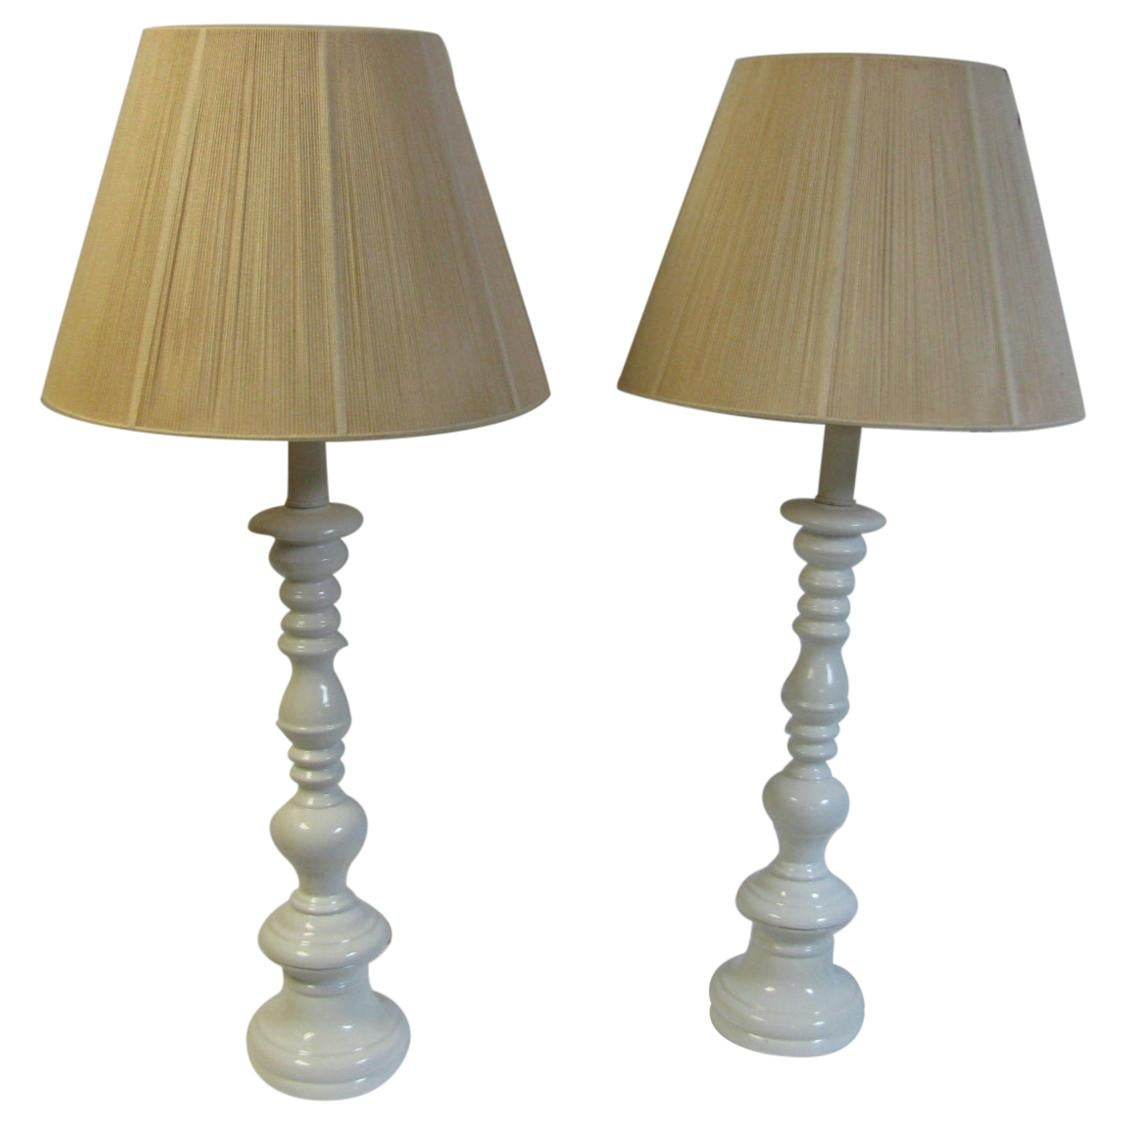 Pair of Tall Mid-Century Modern Classical Styled Porcelain Table Lamps